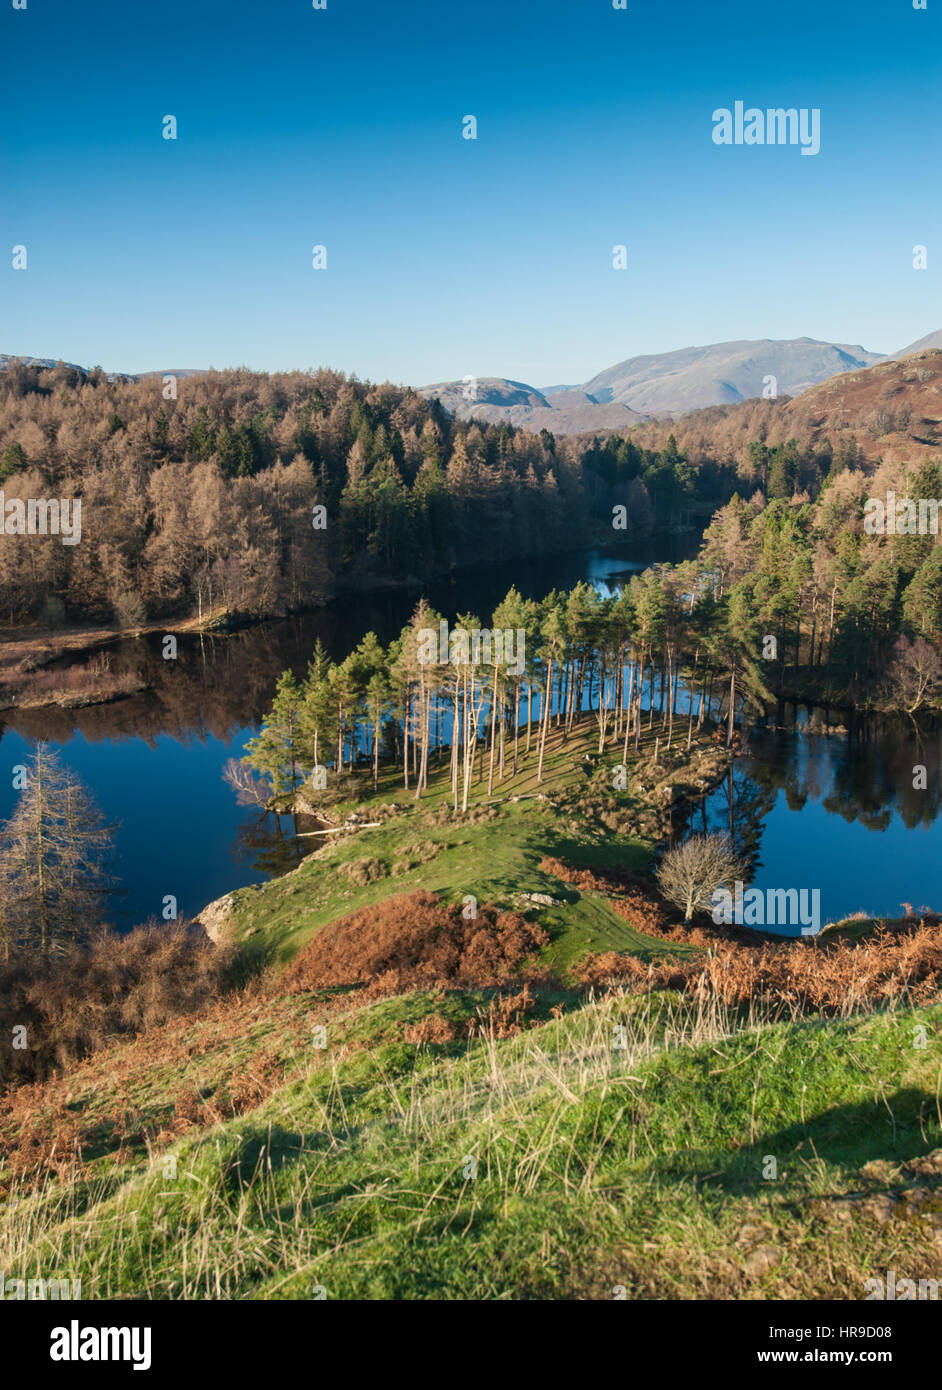 Elevated view across the landscape of Tarn Hows, Langdale, The Lake District.  Cumbria, England, UK. - Stock Image